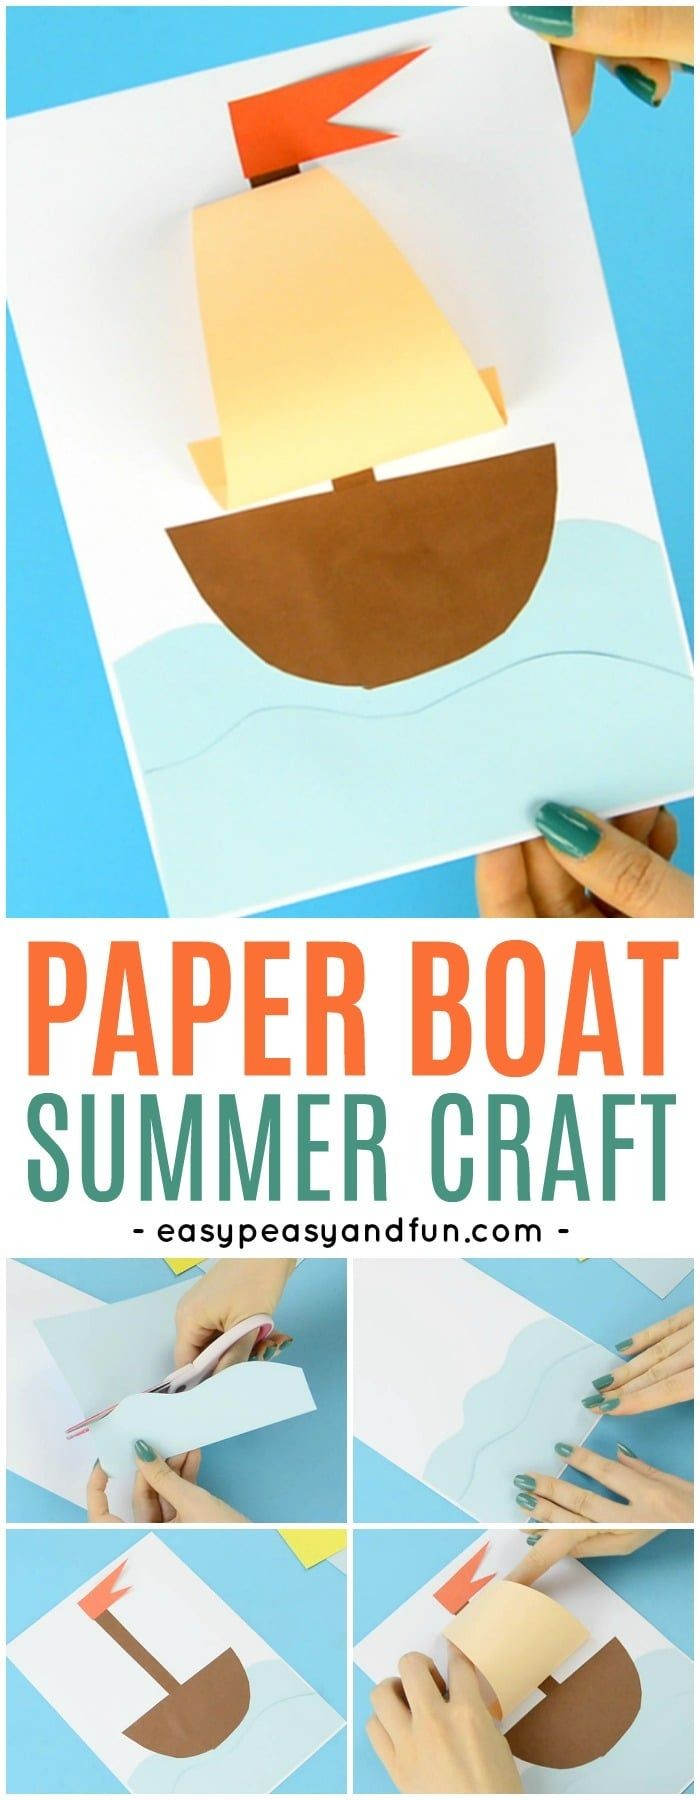 Simple Papercraft Simple Paper Boat Craft Easy Peasy and Fun Pinterest